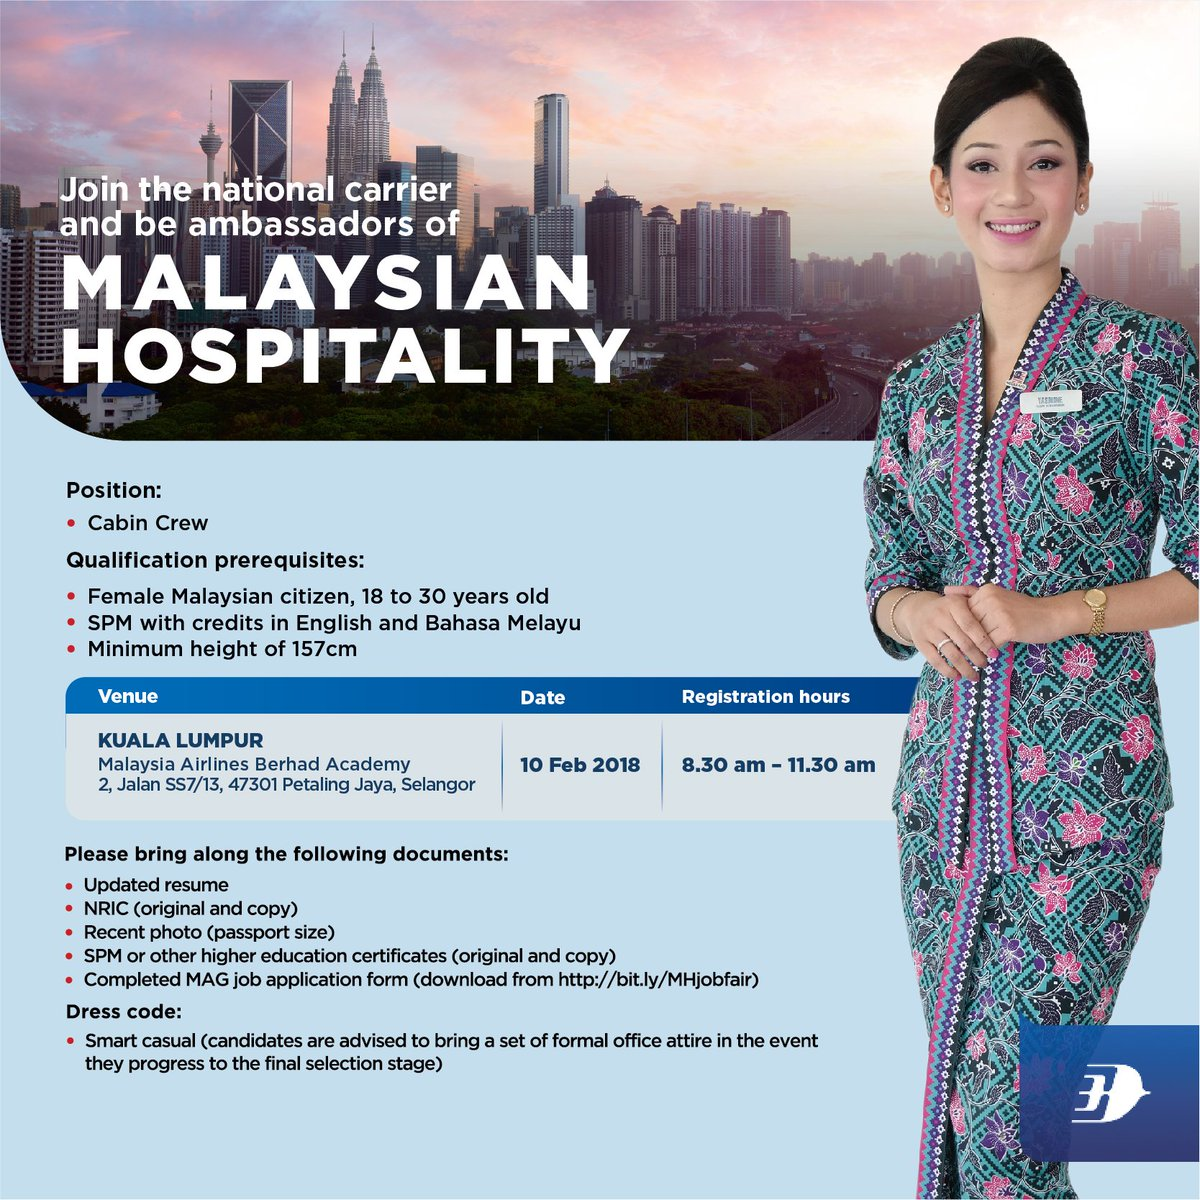 Drop By Our Cabin Crew Recruitment Drive On 10 February 2018 At Malaysia Airlines Berhad Academy Kelana Jaya For Further Info Please Visit